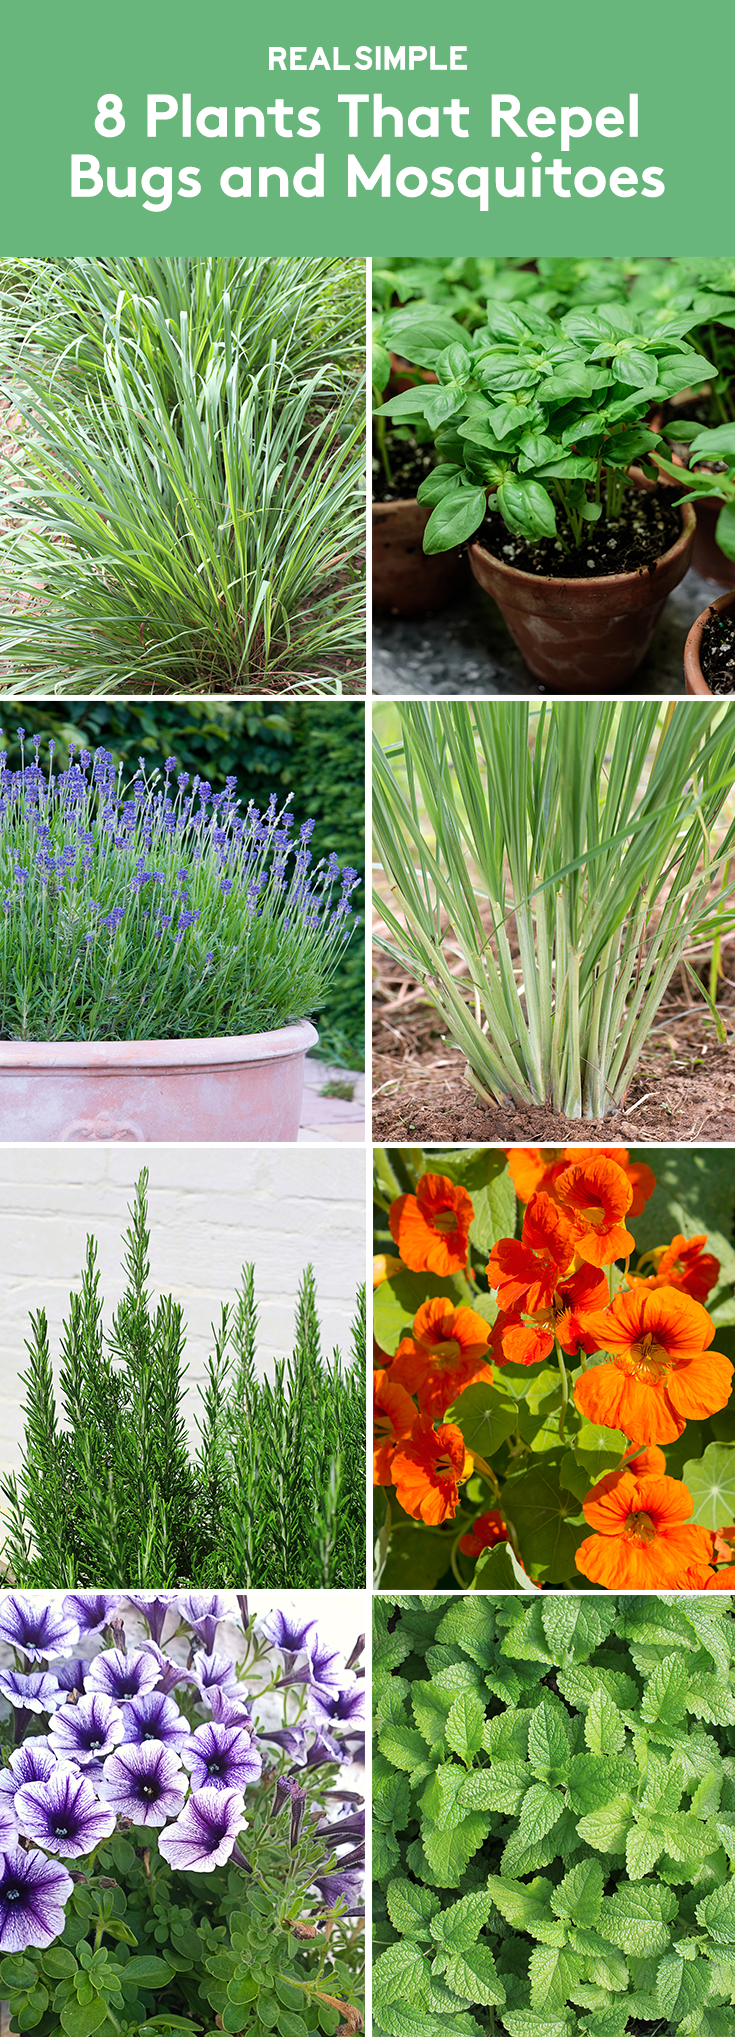 8 Plants That Repel Bugs and Mosquitoes #plantsthatrepelmosquitoes